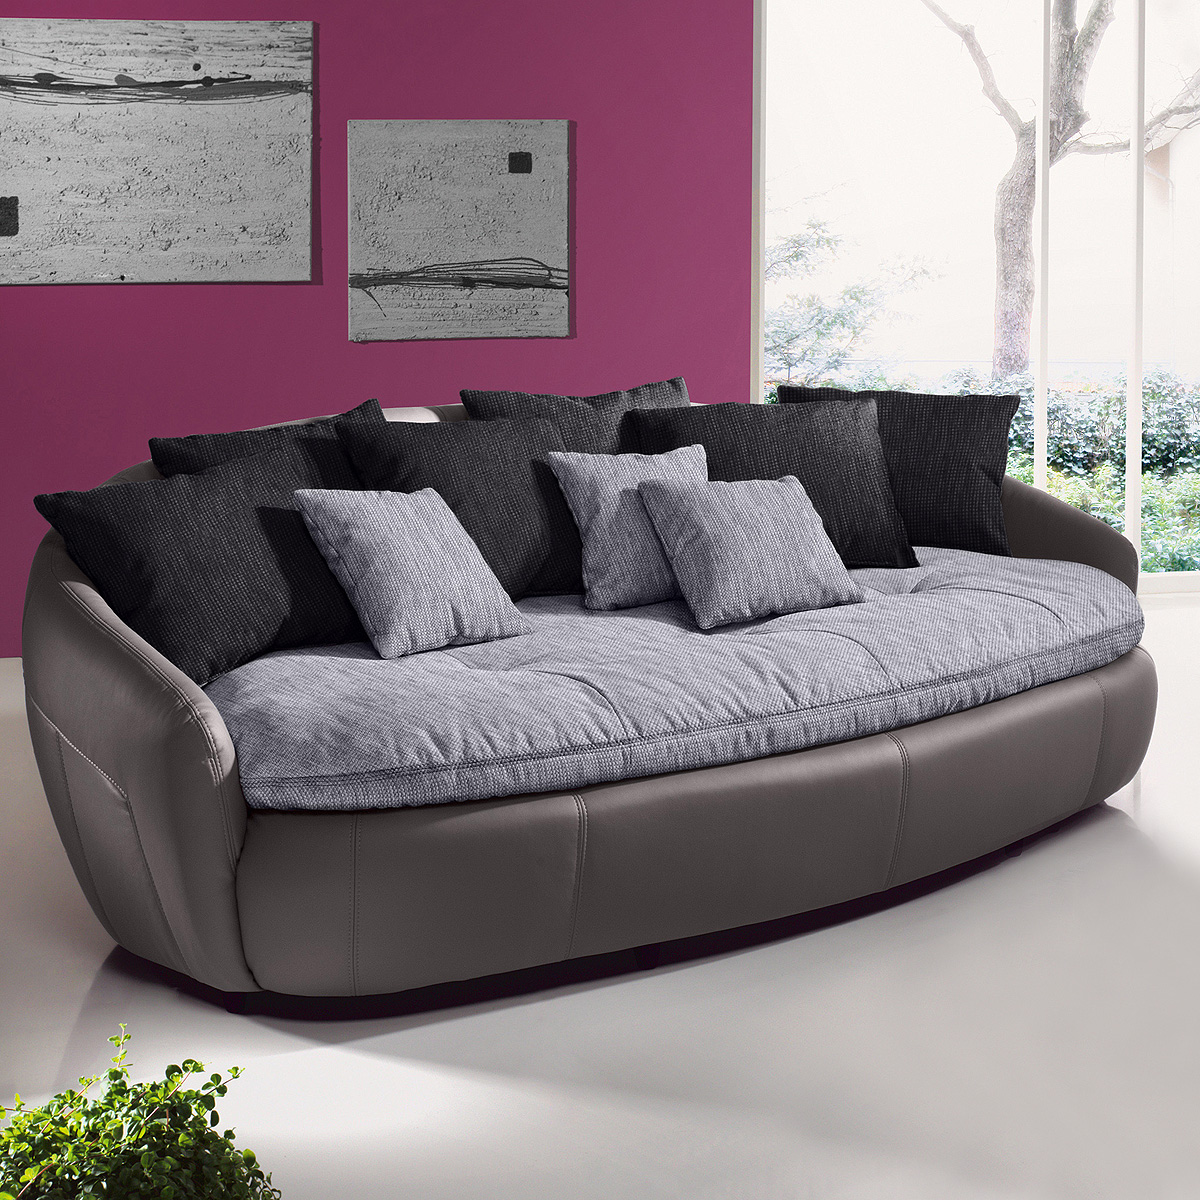 megasofa aruba 2 sofa bigsofa einzelsofa grau petrol schwarz braun farbauswahl. Black Bedroom Furniture Sets. Home Design Ideas